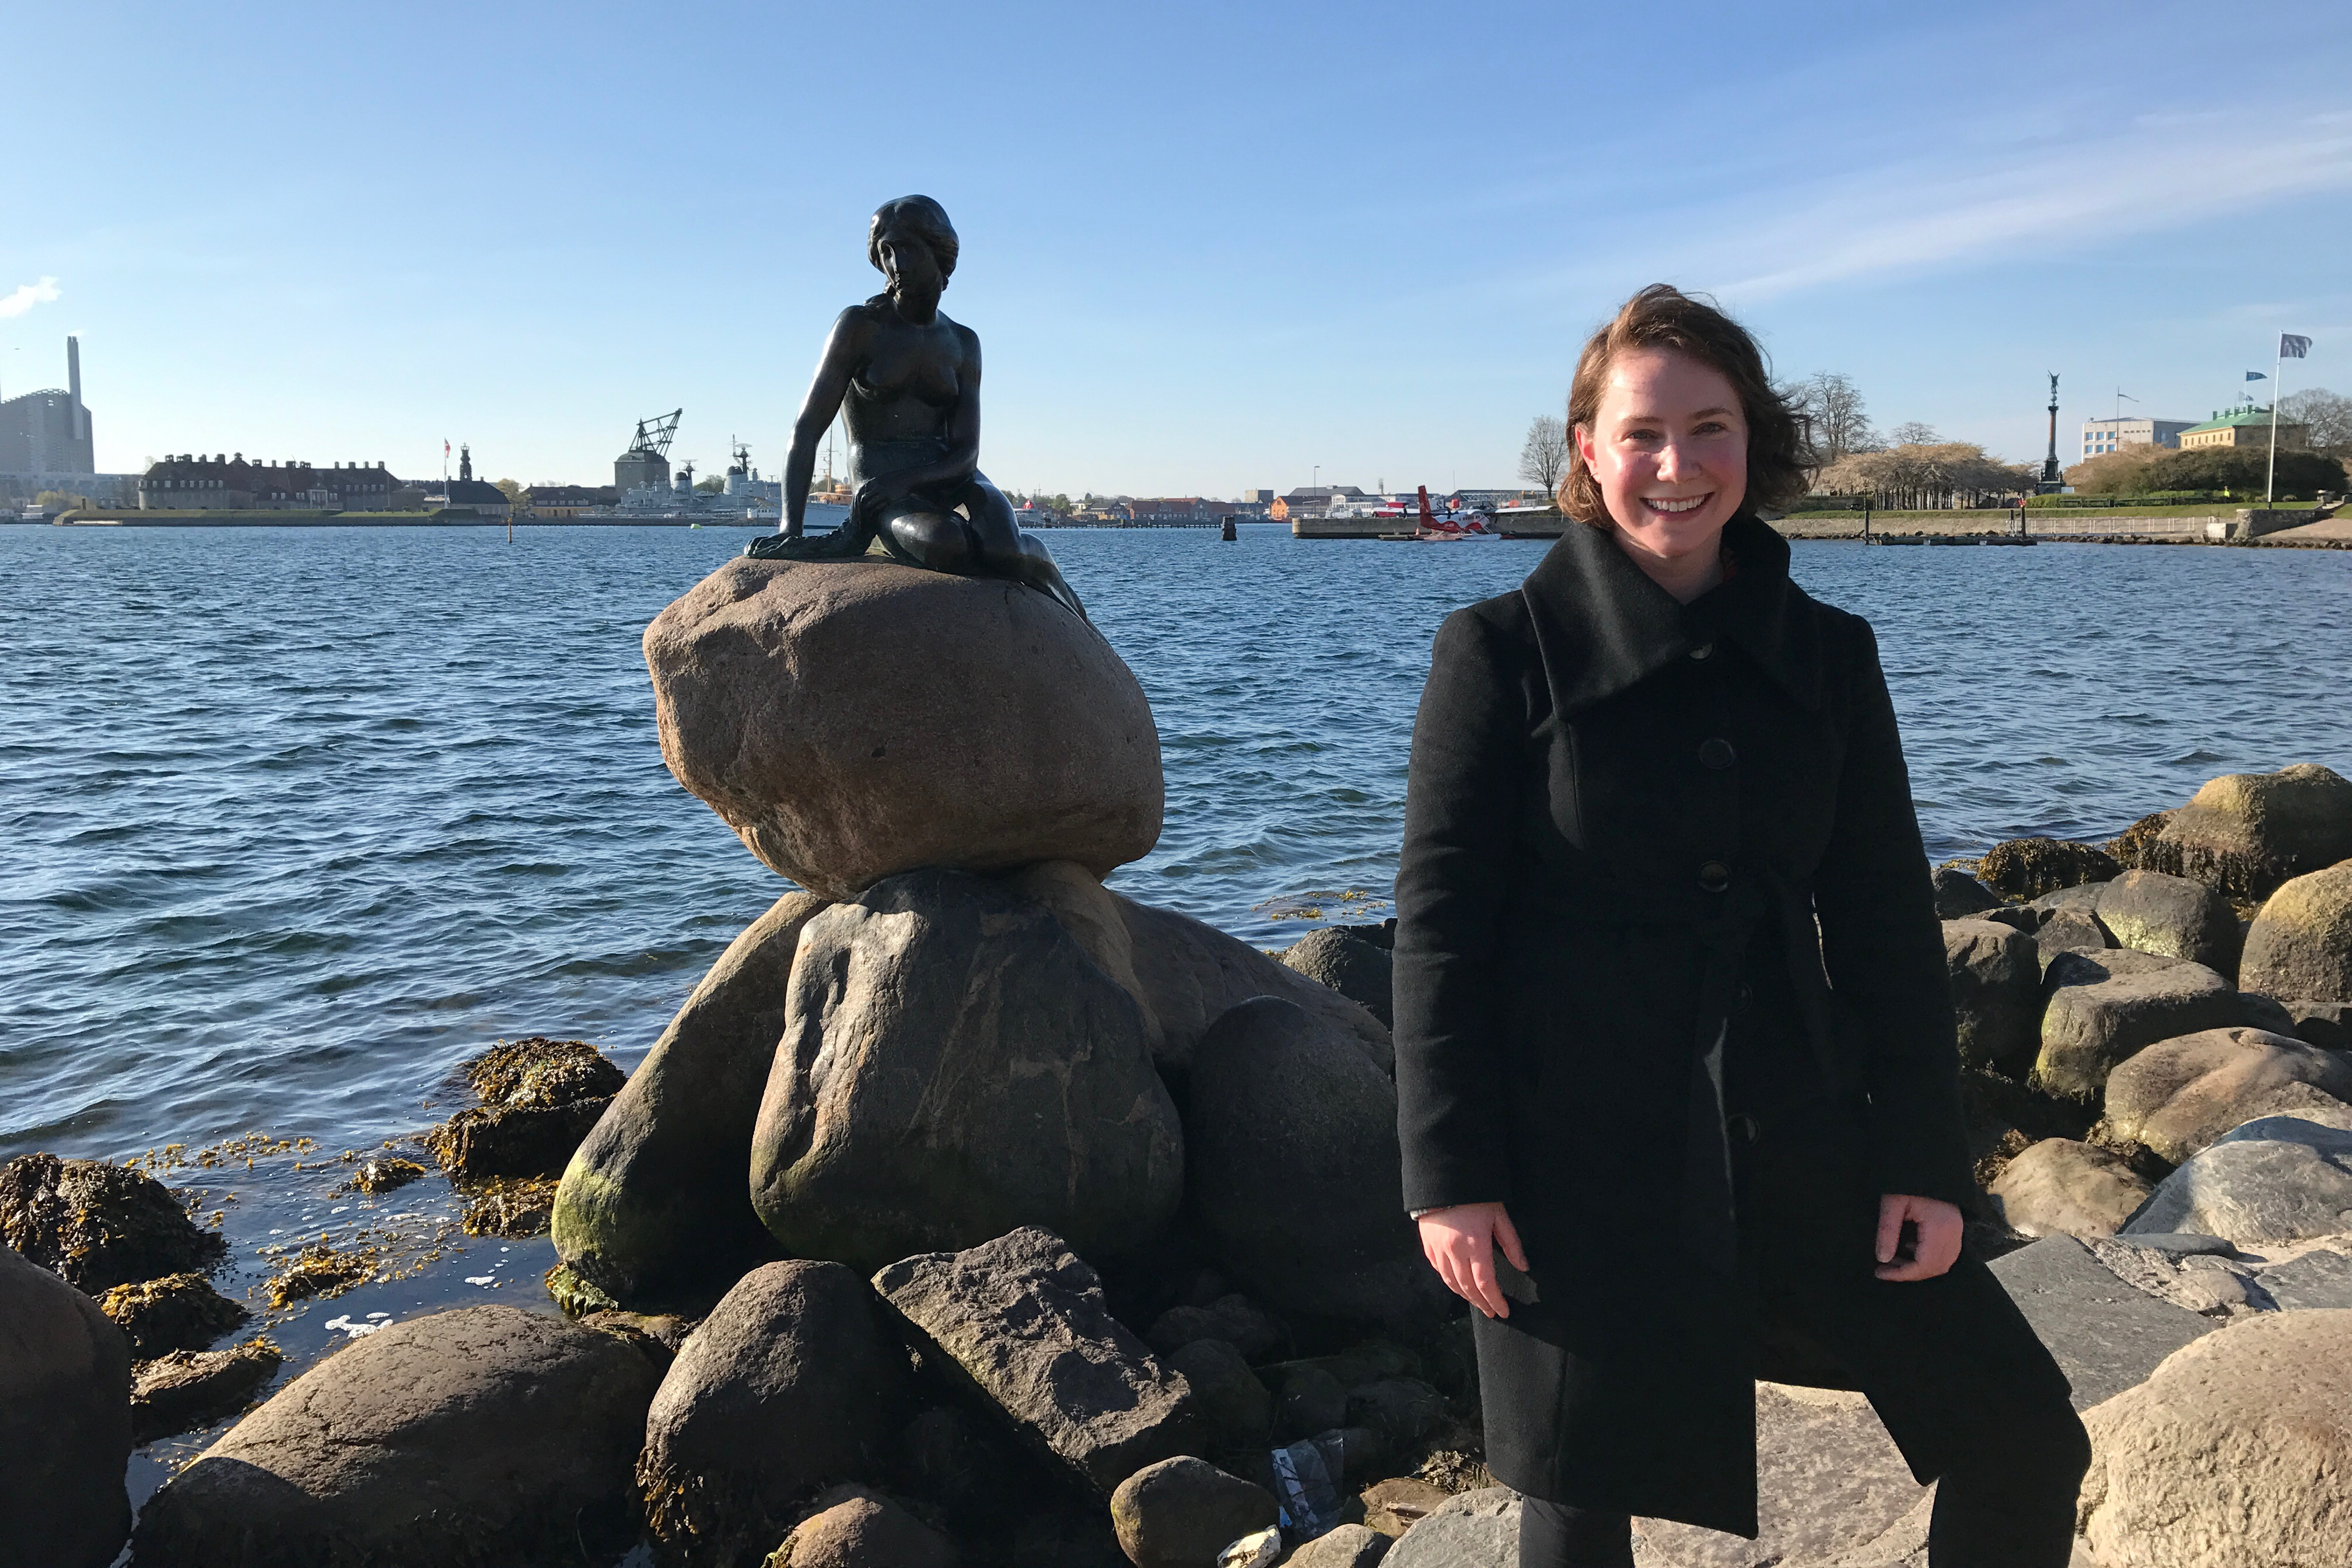 Solo travel picture in Copenhagen with the Little Mermaid statue